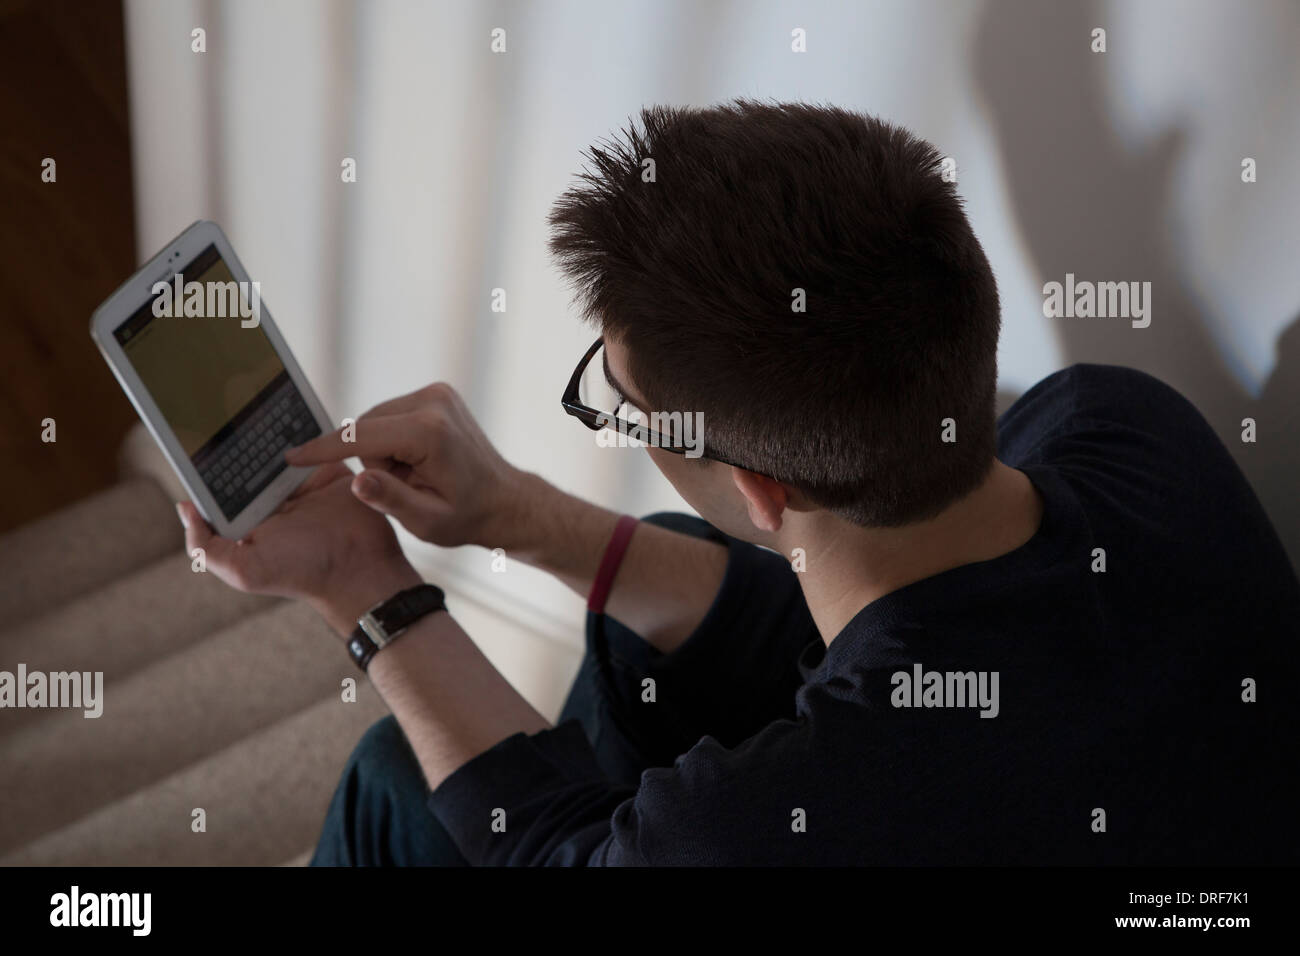 Over shoulder shot of man wearing glasses typing on a keypad on the touch screen digital tablet. - Stock Image